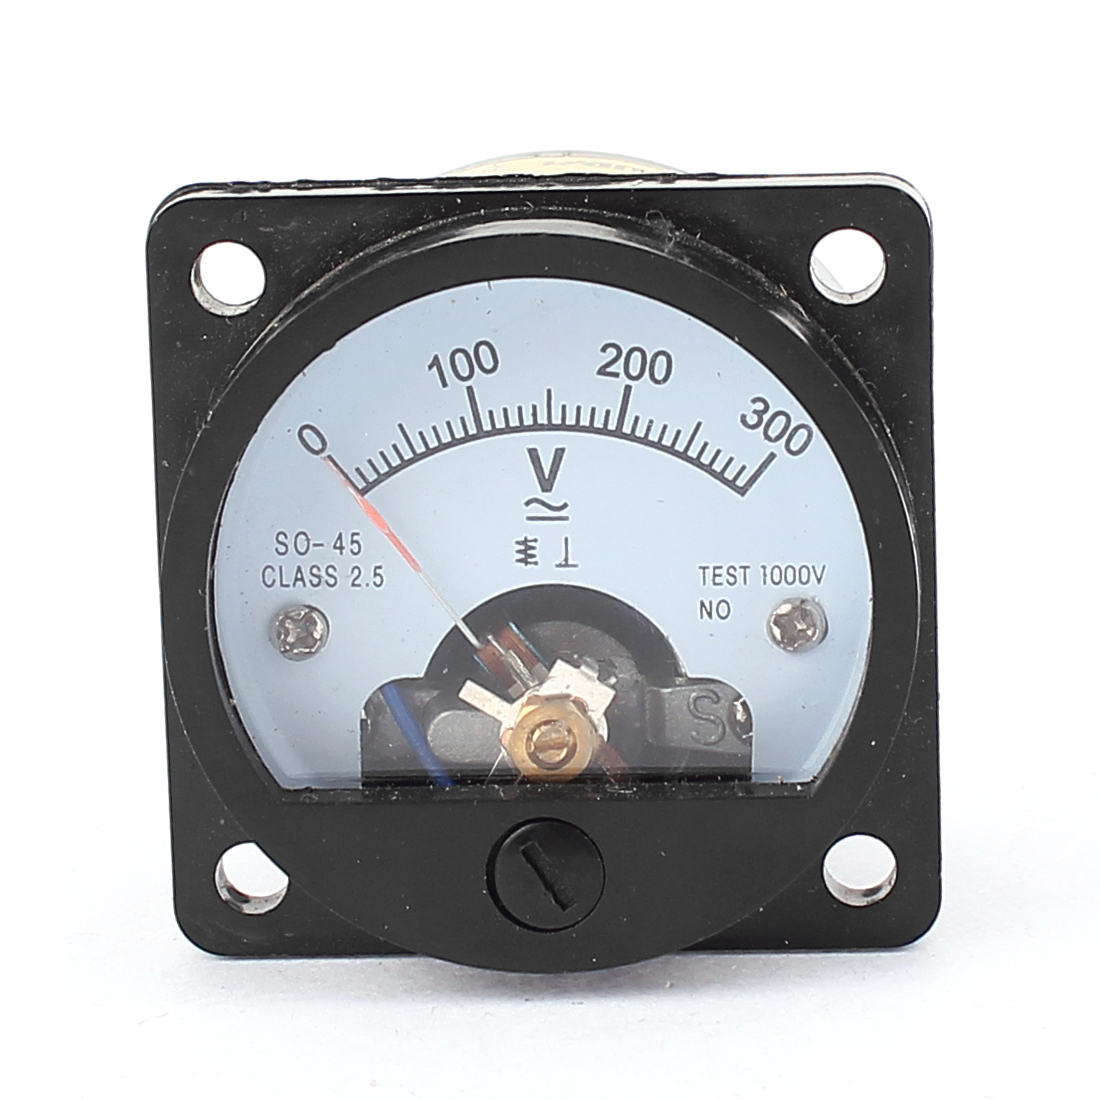 AC 0-300V Analog Panel Voltmeter Voltage Meter Measuring Gauge Class 2.5